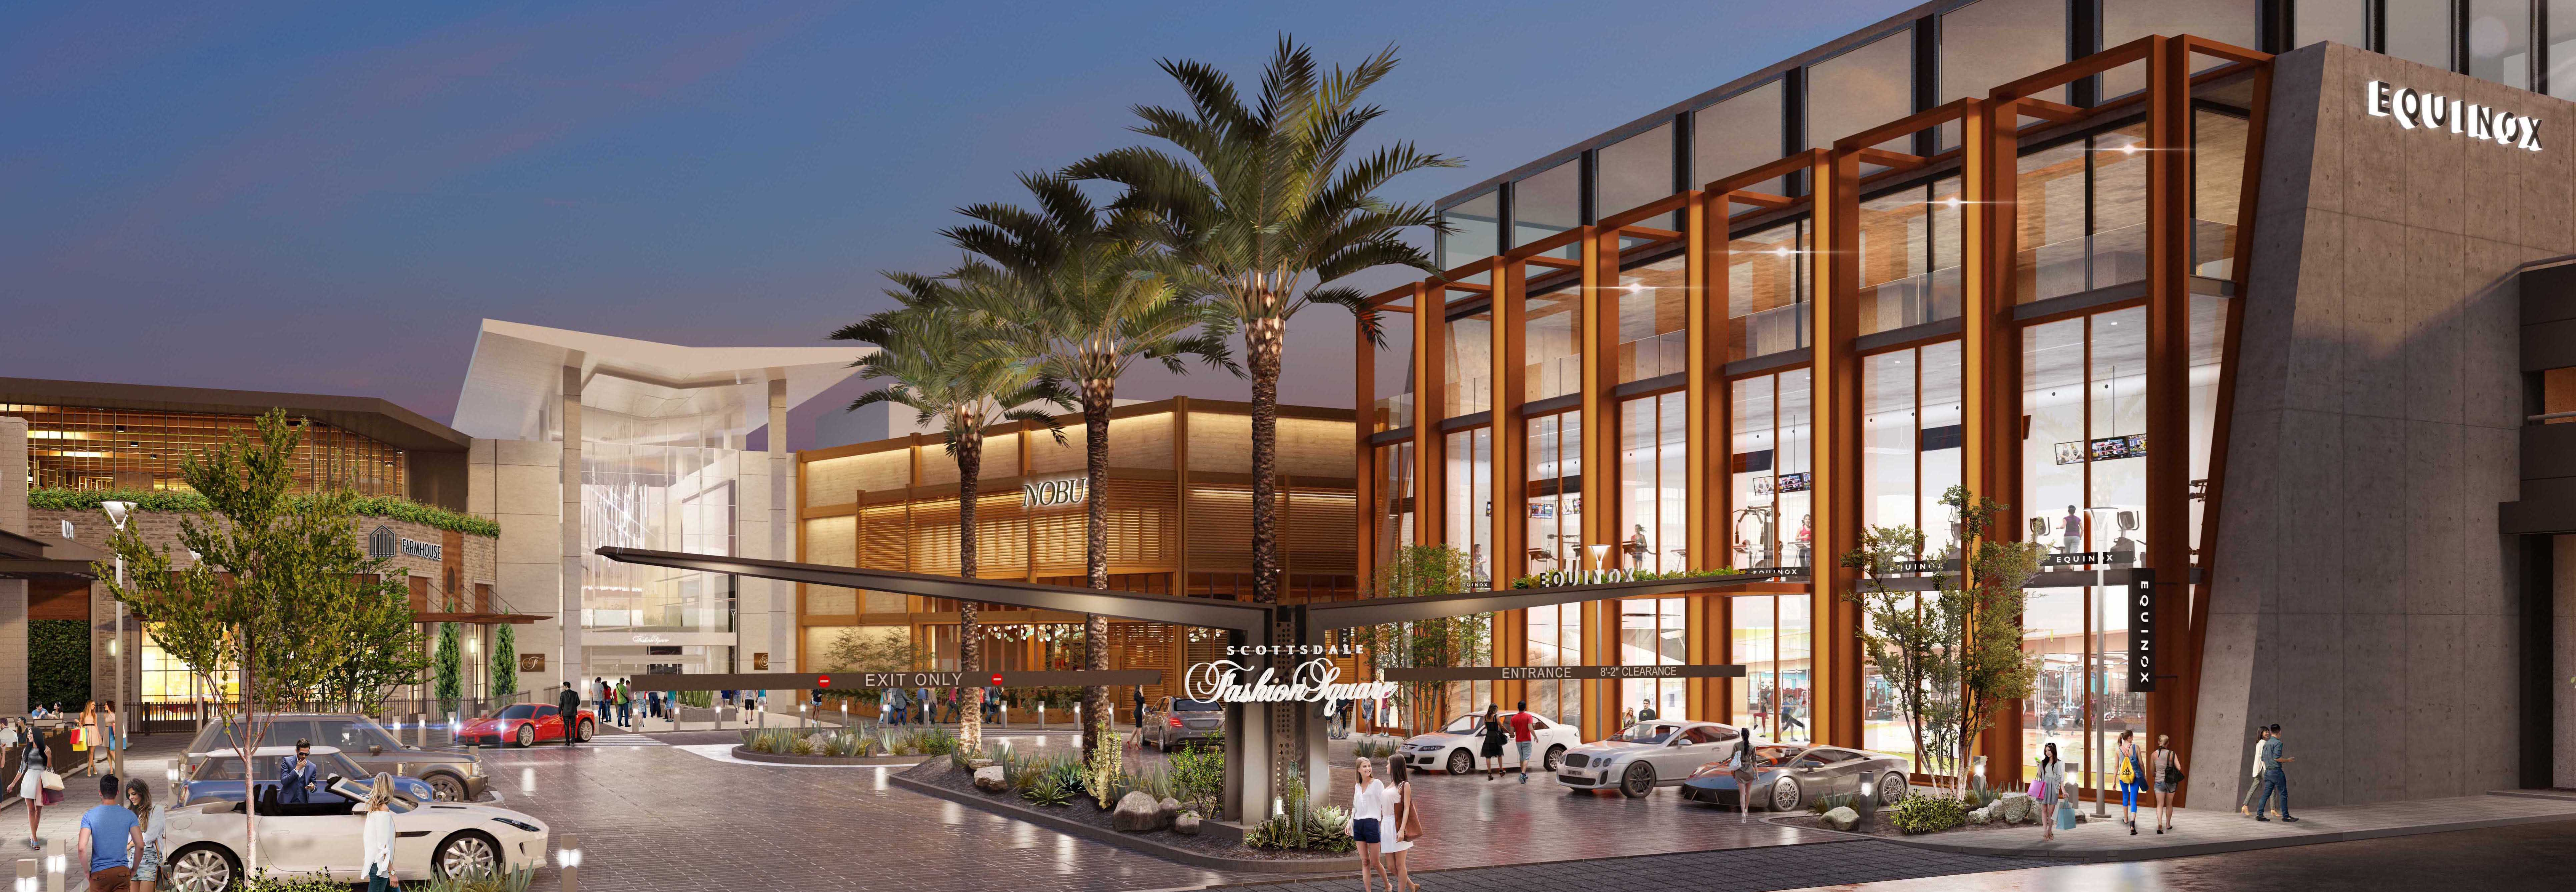 Rendering of the updates to Scottsdale Fashion Square